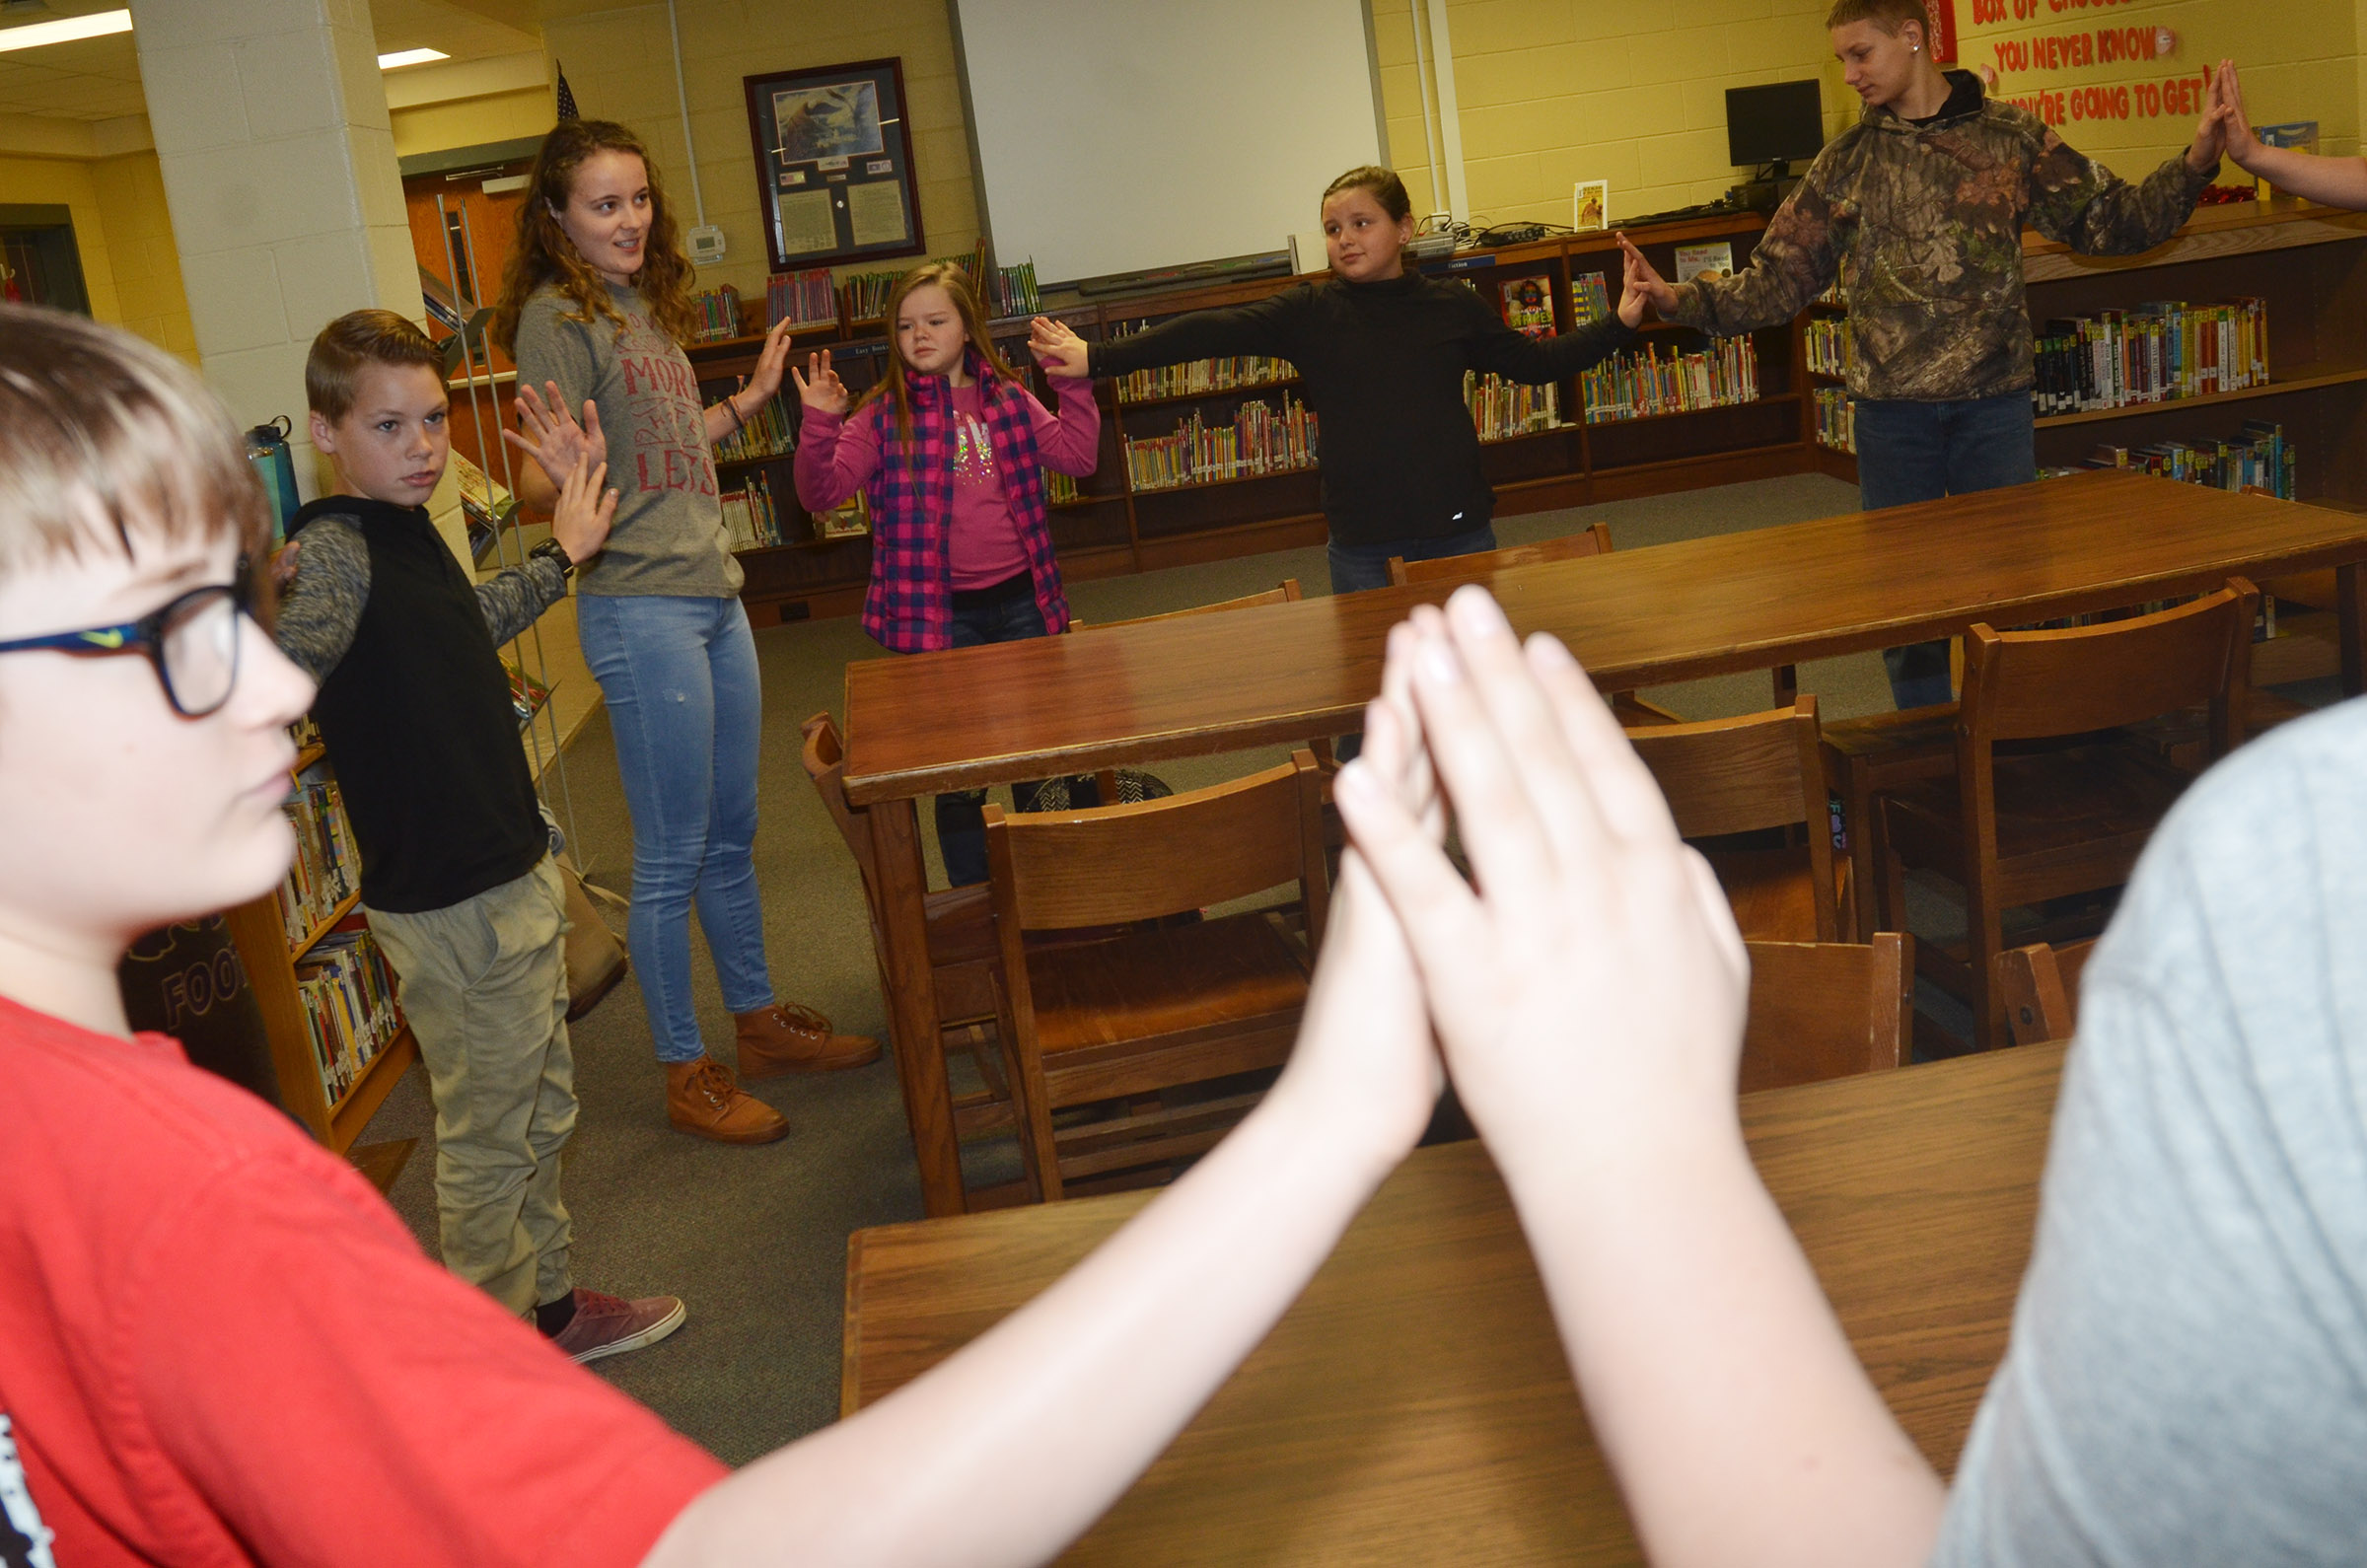 CHS senior Caroline McMahan asks students to join hands to see if any are the same.